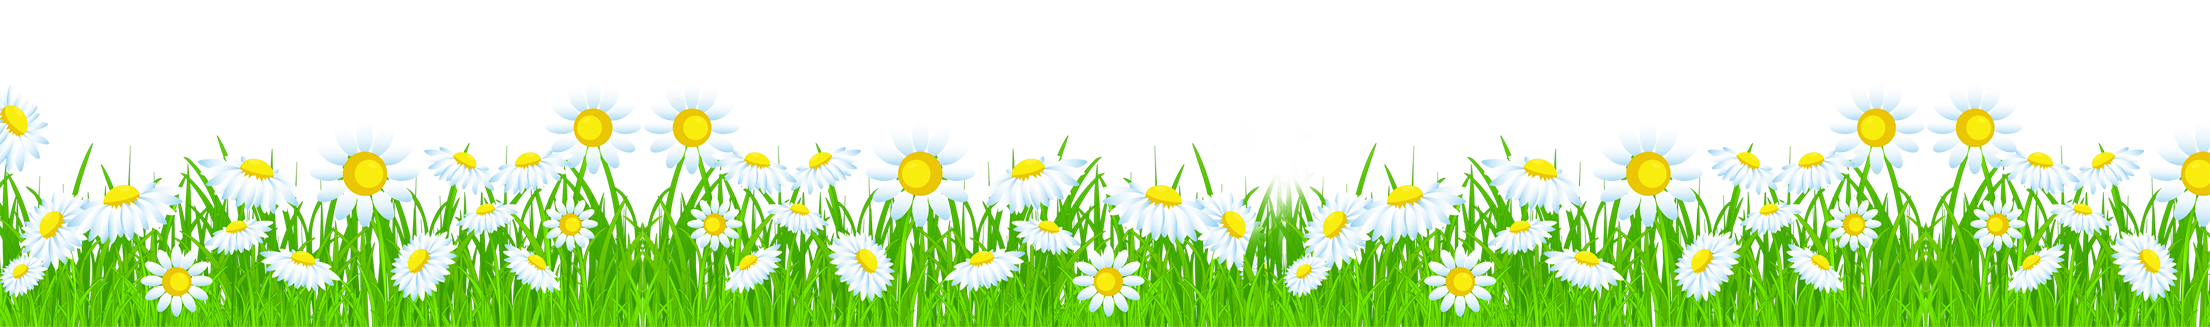 Daisy grass frames illustrations. Daisies clipart flower day